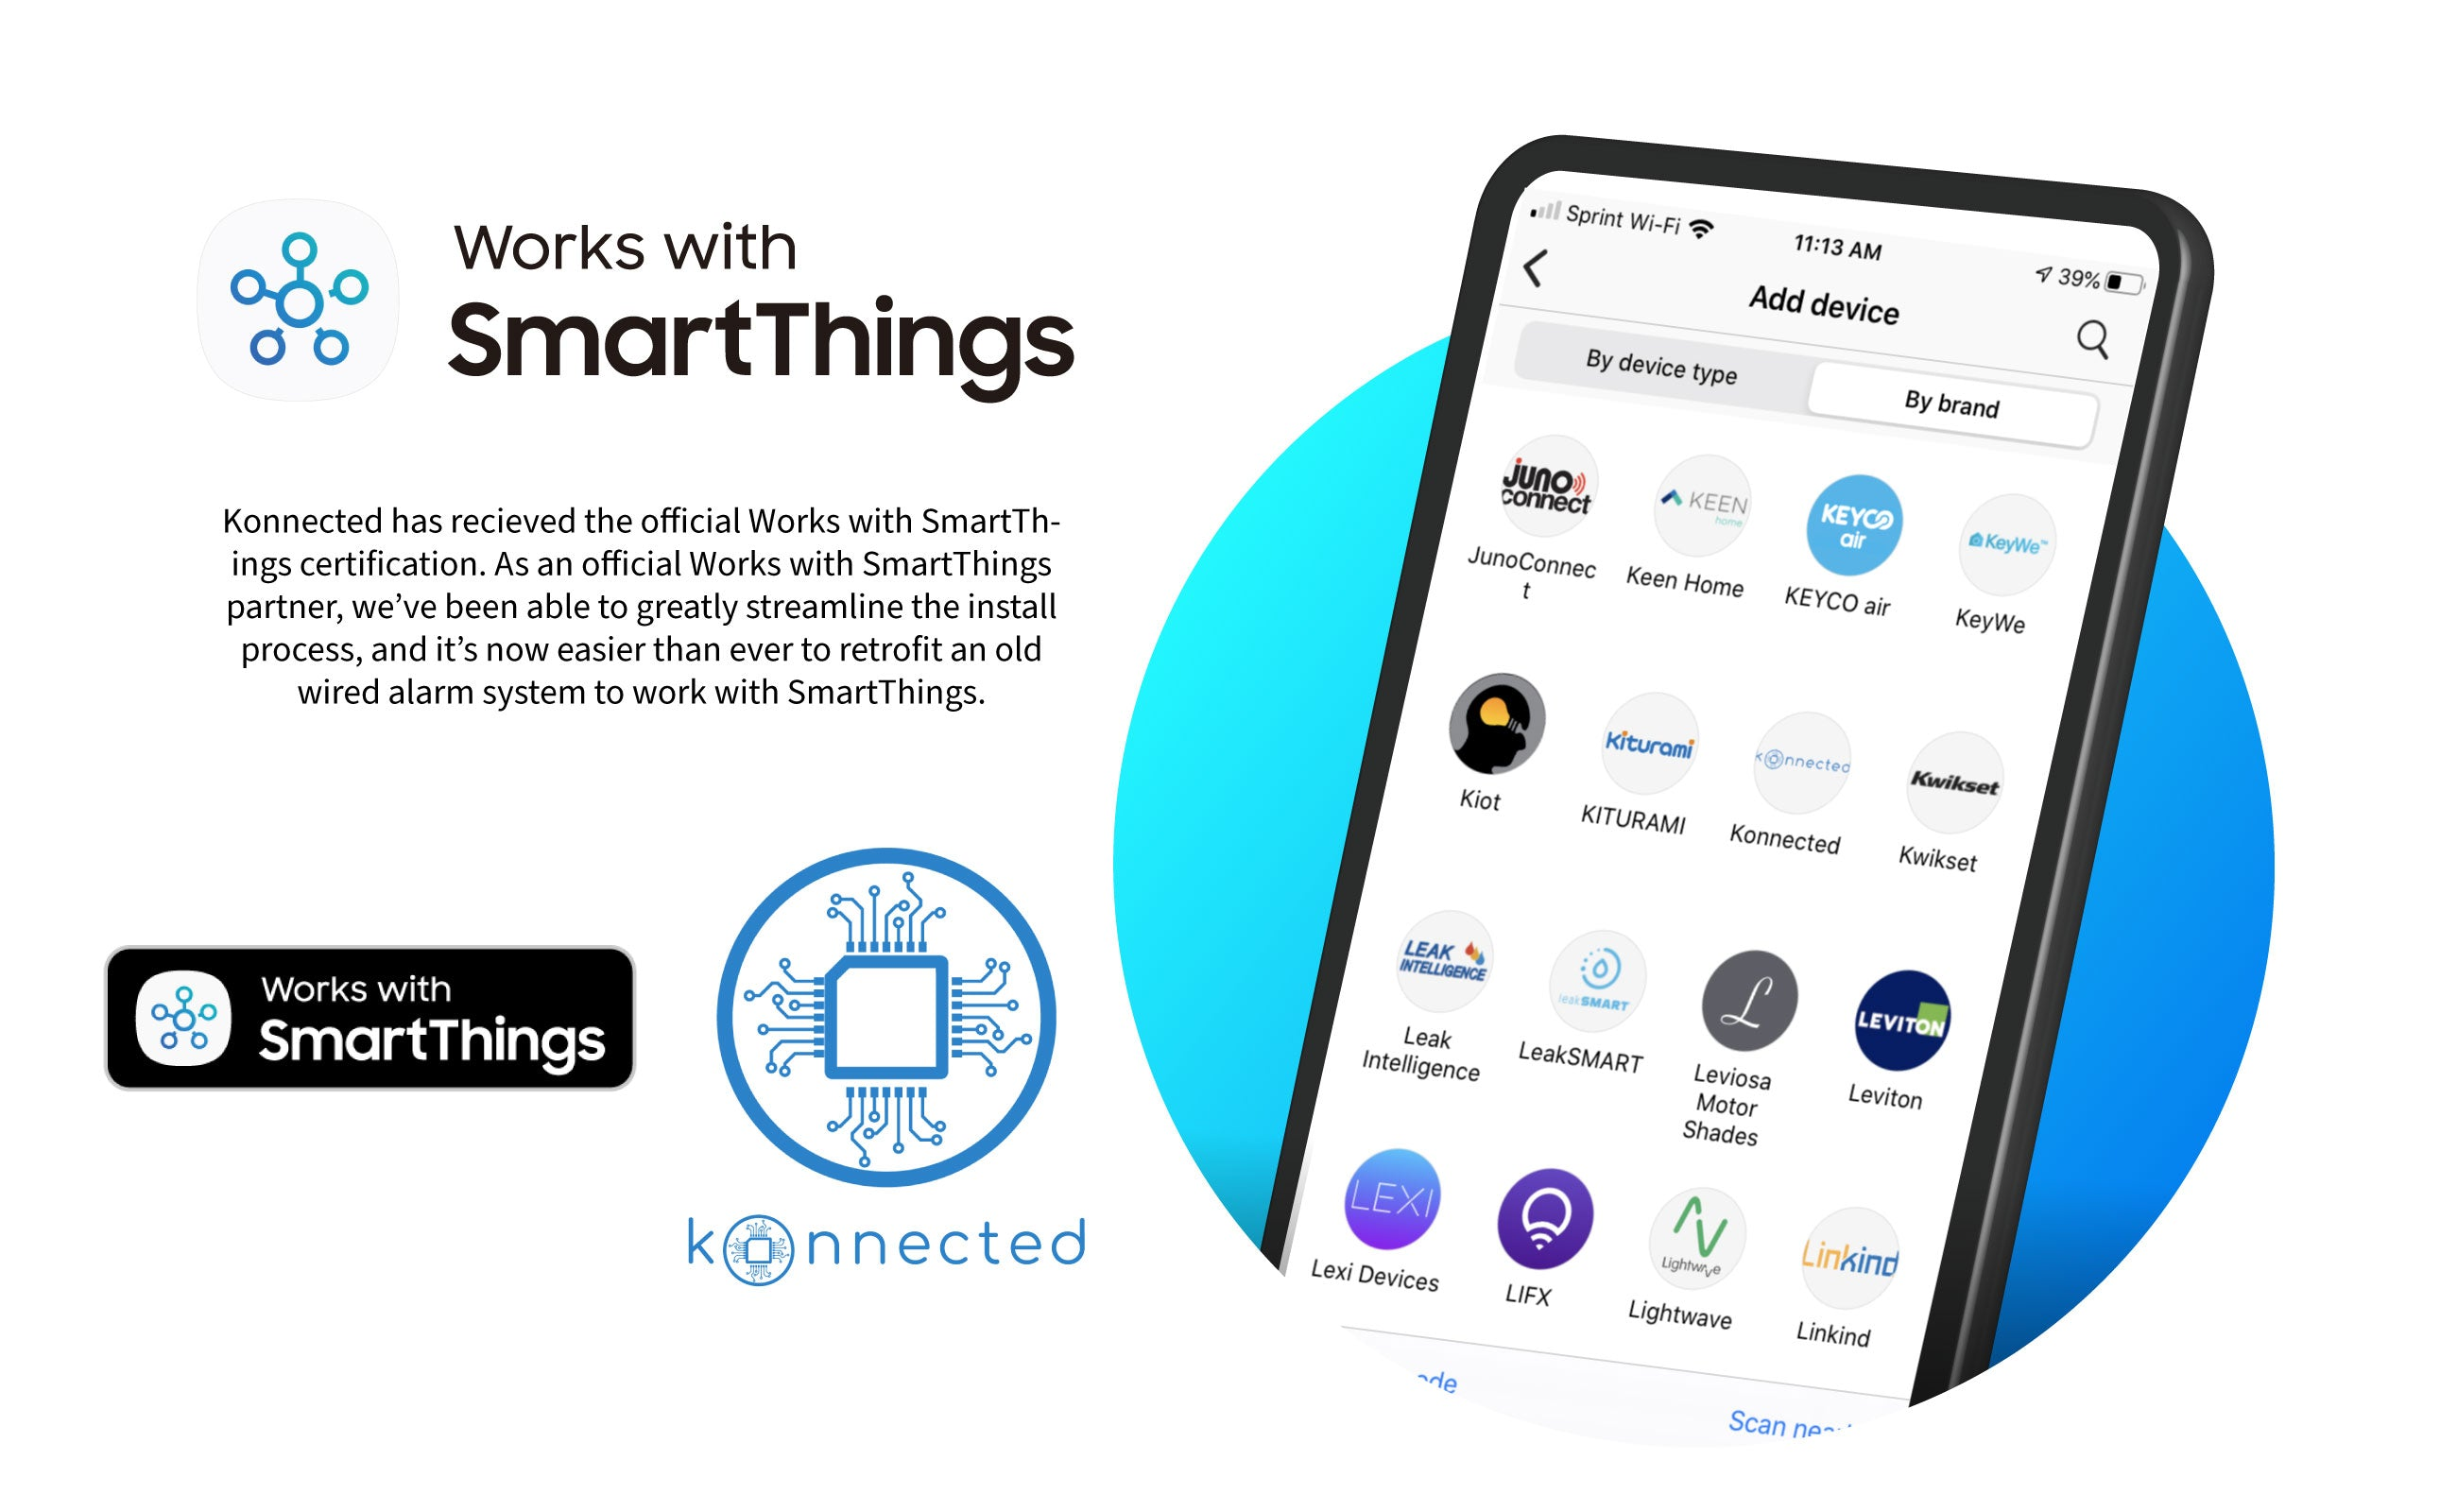 Konnected Earns Official Works With SmartThings Certification